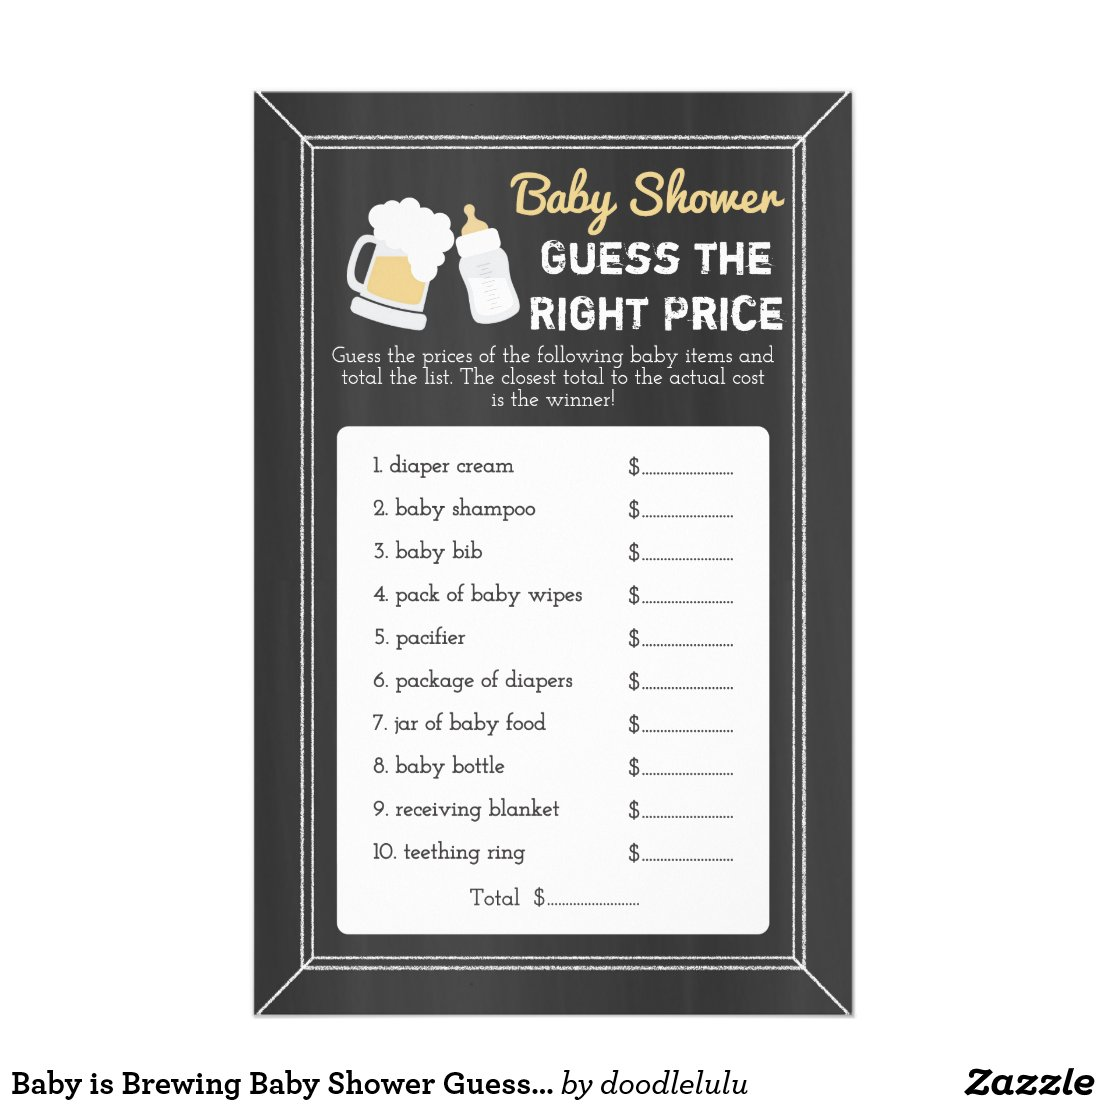 Baby is Brewing Baby Shower Guess Right Price Game Flyer